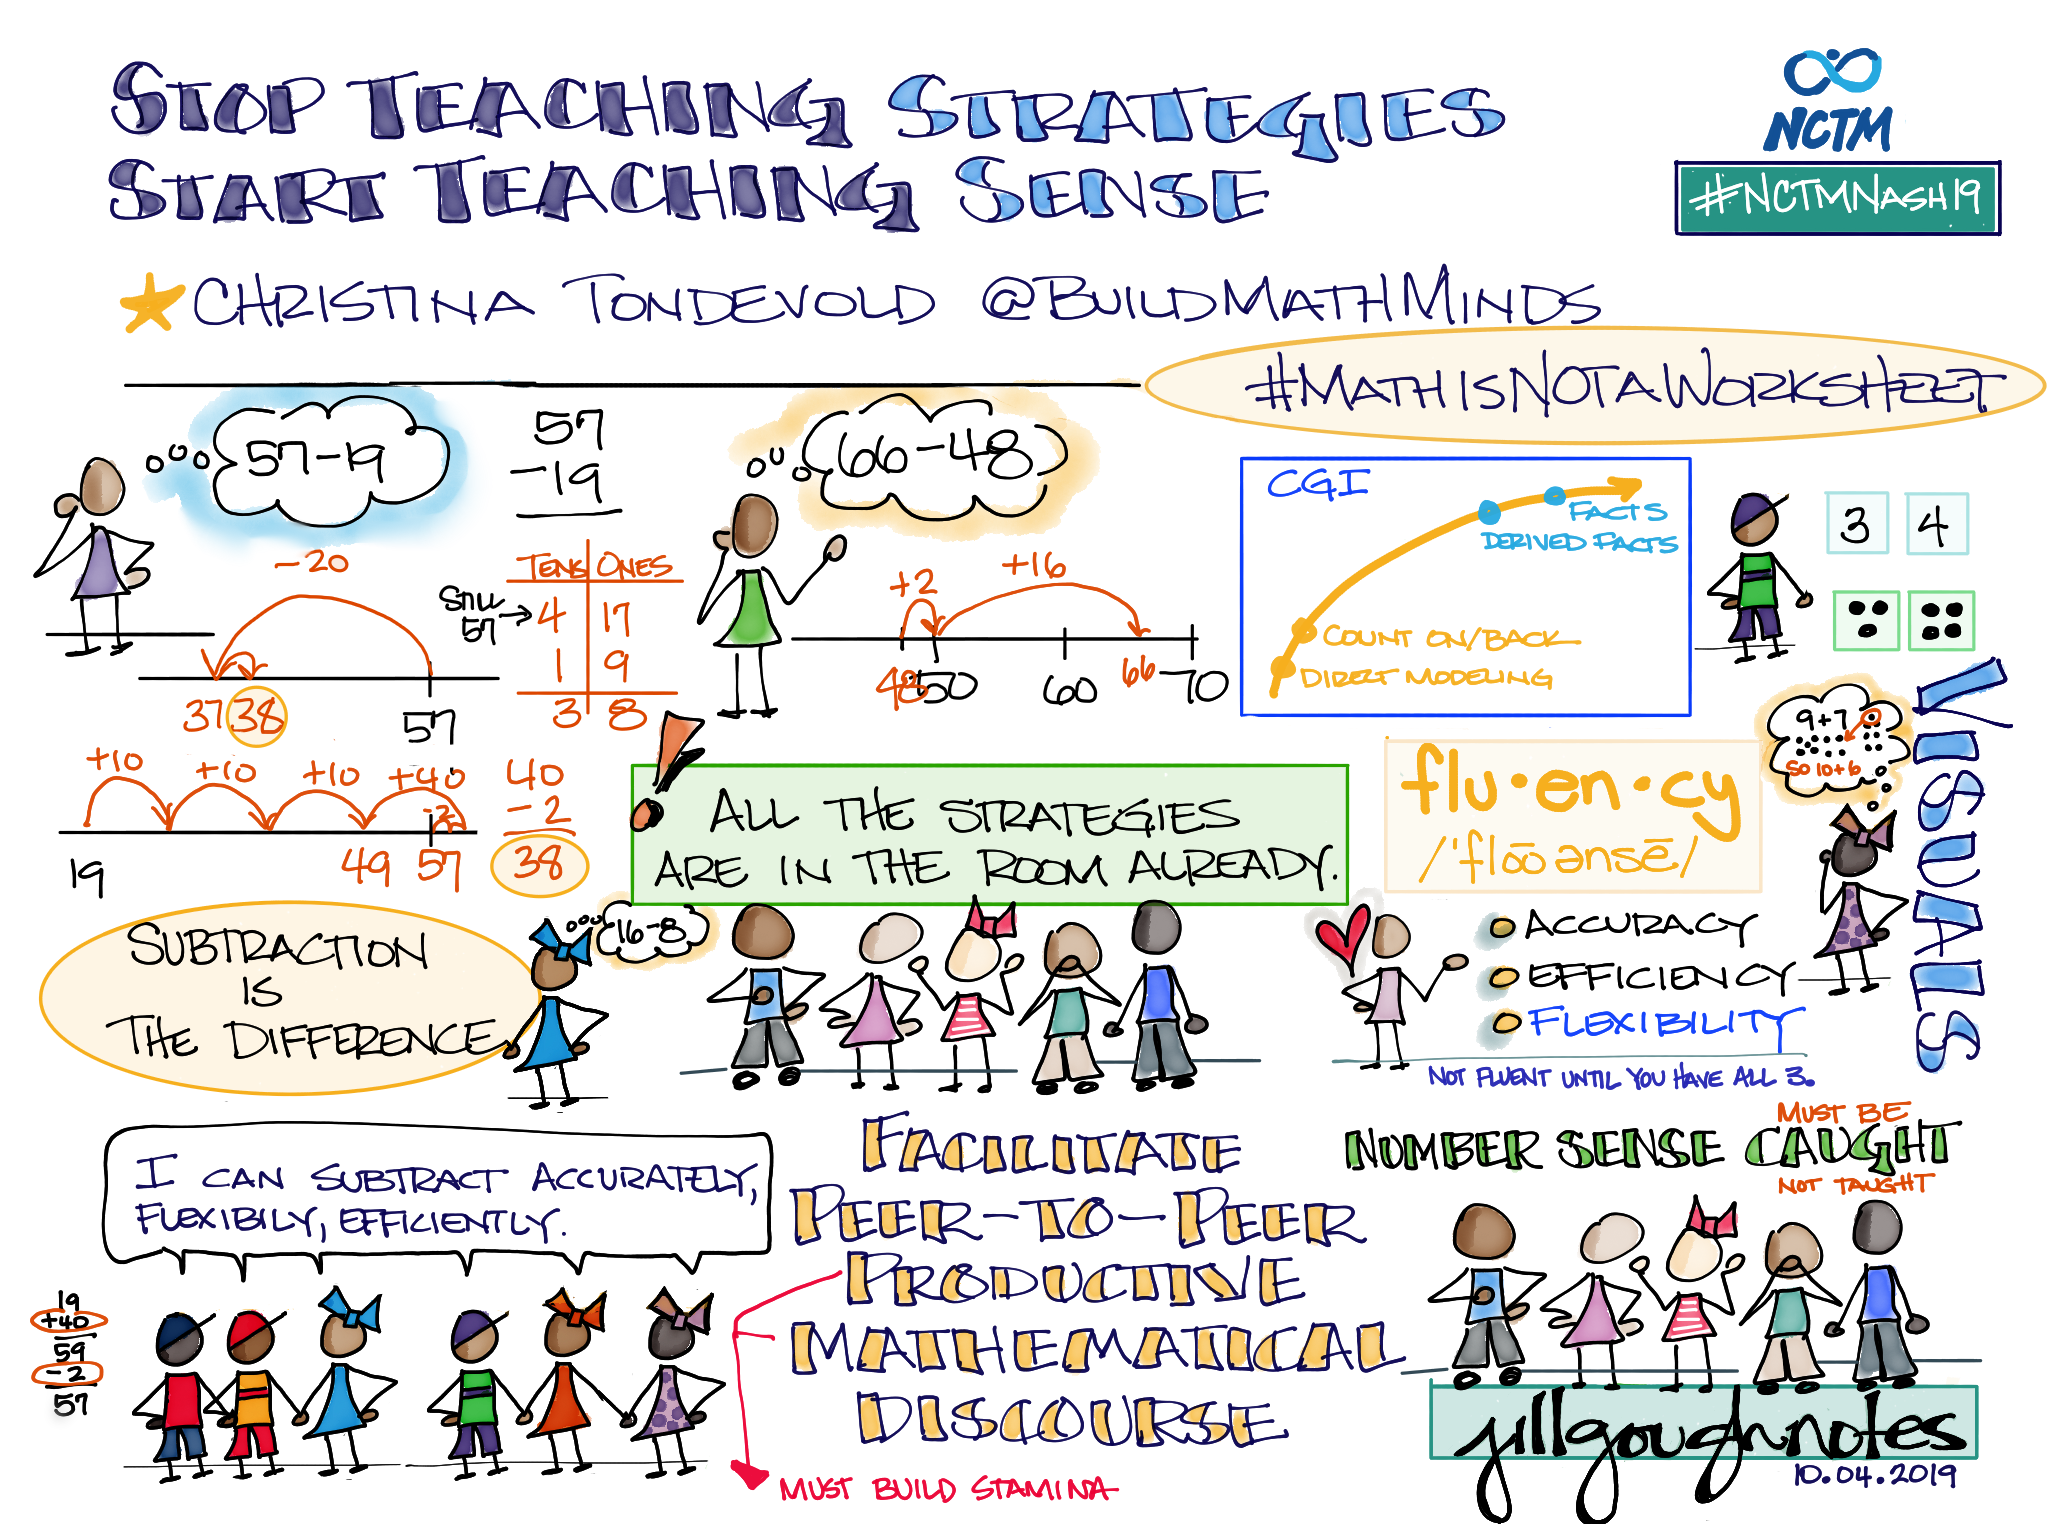 Sharing my #Sketchnotes from @BuildMathMinds #NCTMNash19 Stop Teaching Strategies Start Teaching Sense